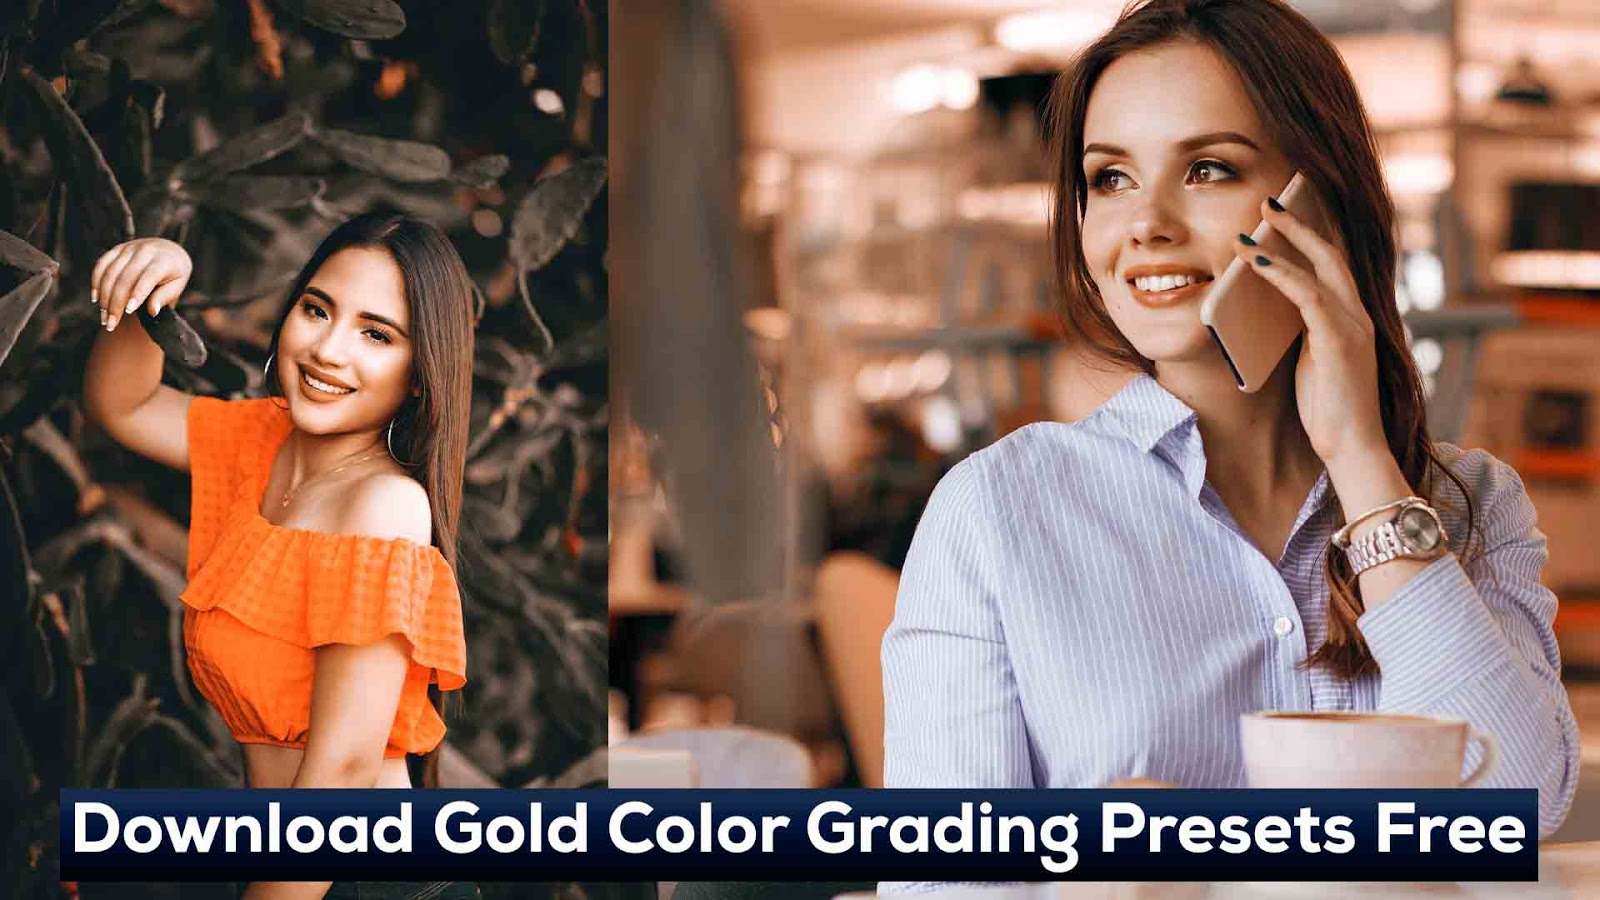 Gold Color Grading Effect in Photoshop CC - Download Gold Color Grading Presets Free